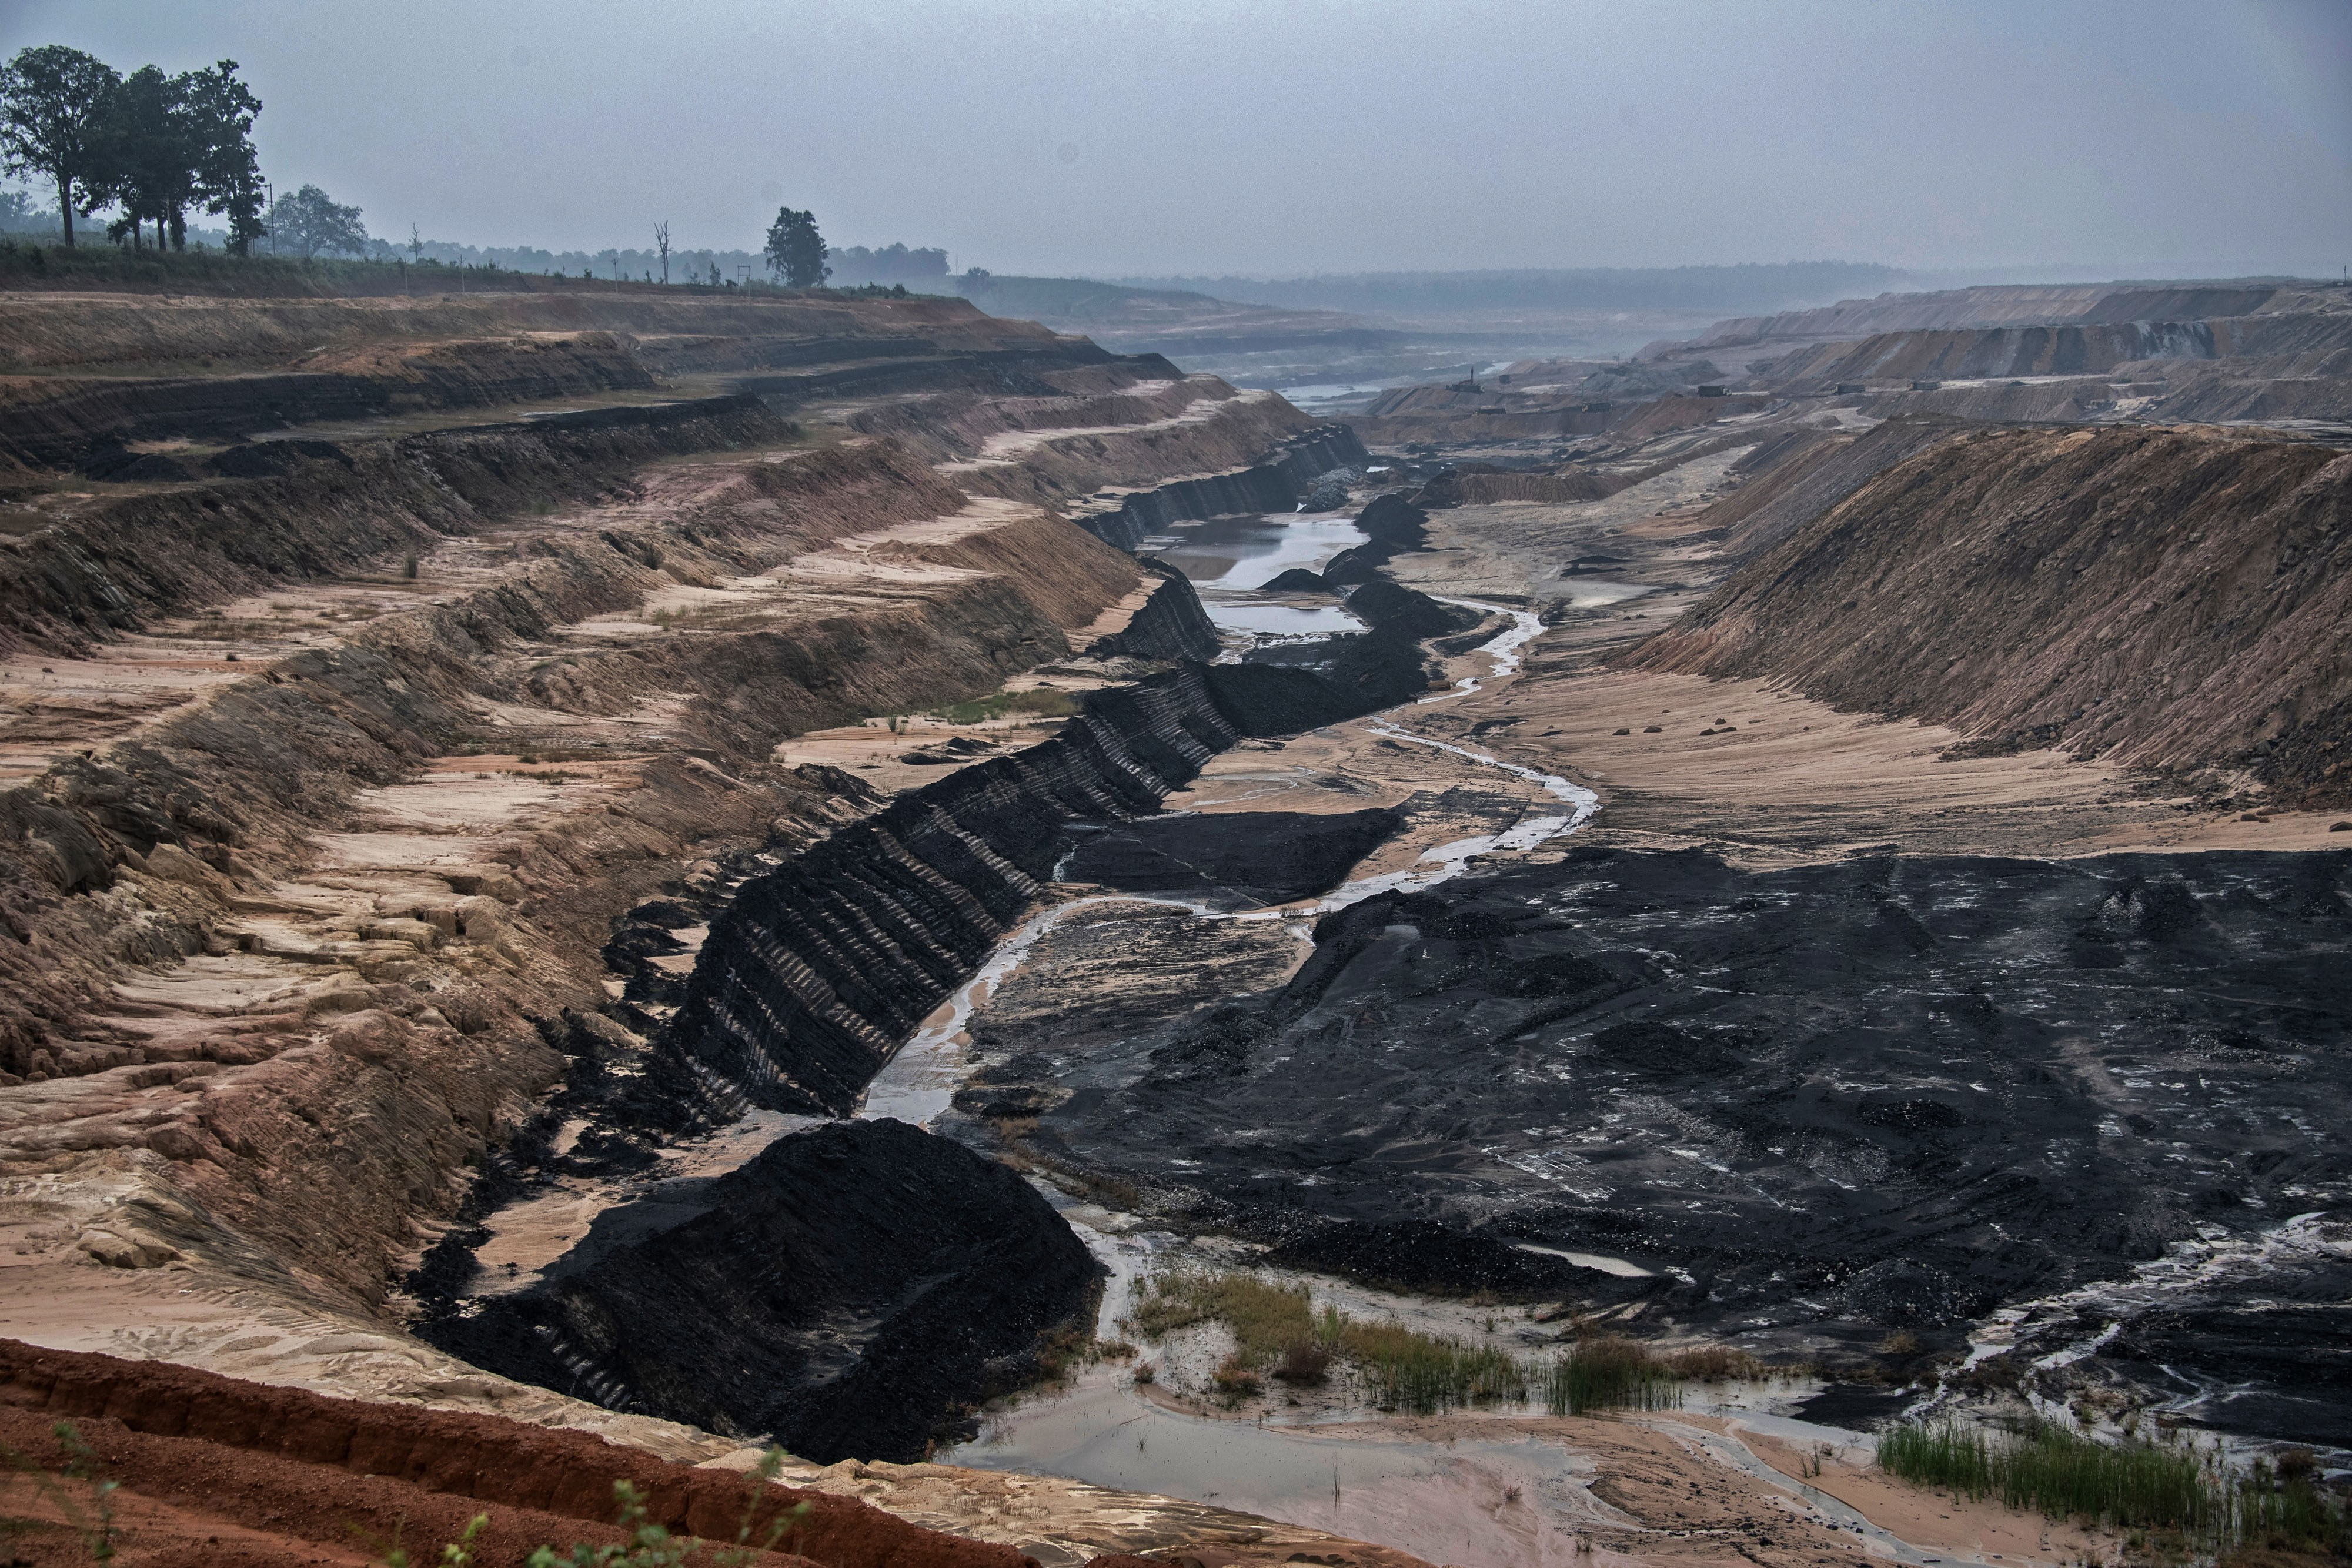 The existing PEKB coal mine in the Hasdeo Aranya forests. Adani is the MDO (mine developer and operator). Photo by Brian Cassey, www.briancasseyphotographer.com